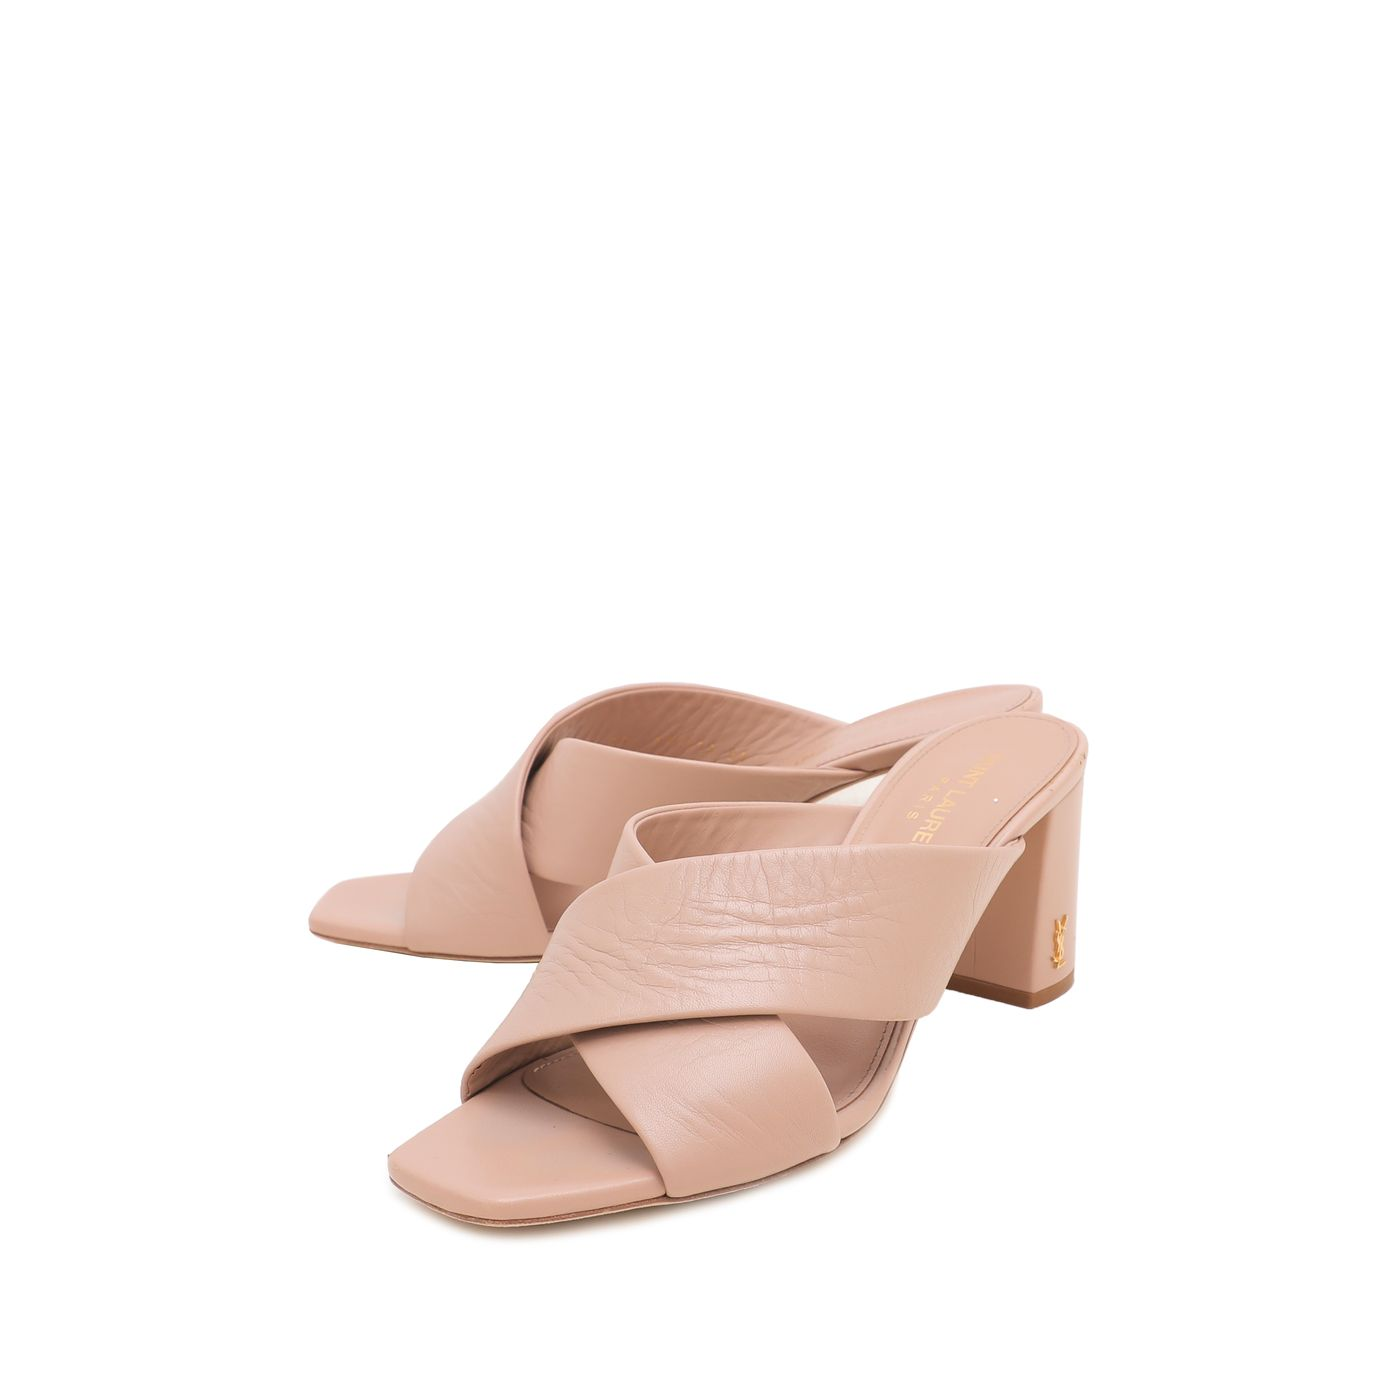 YSL Nude Loulou Criss Cross Sandals 38